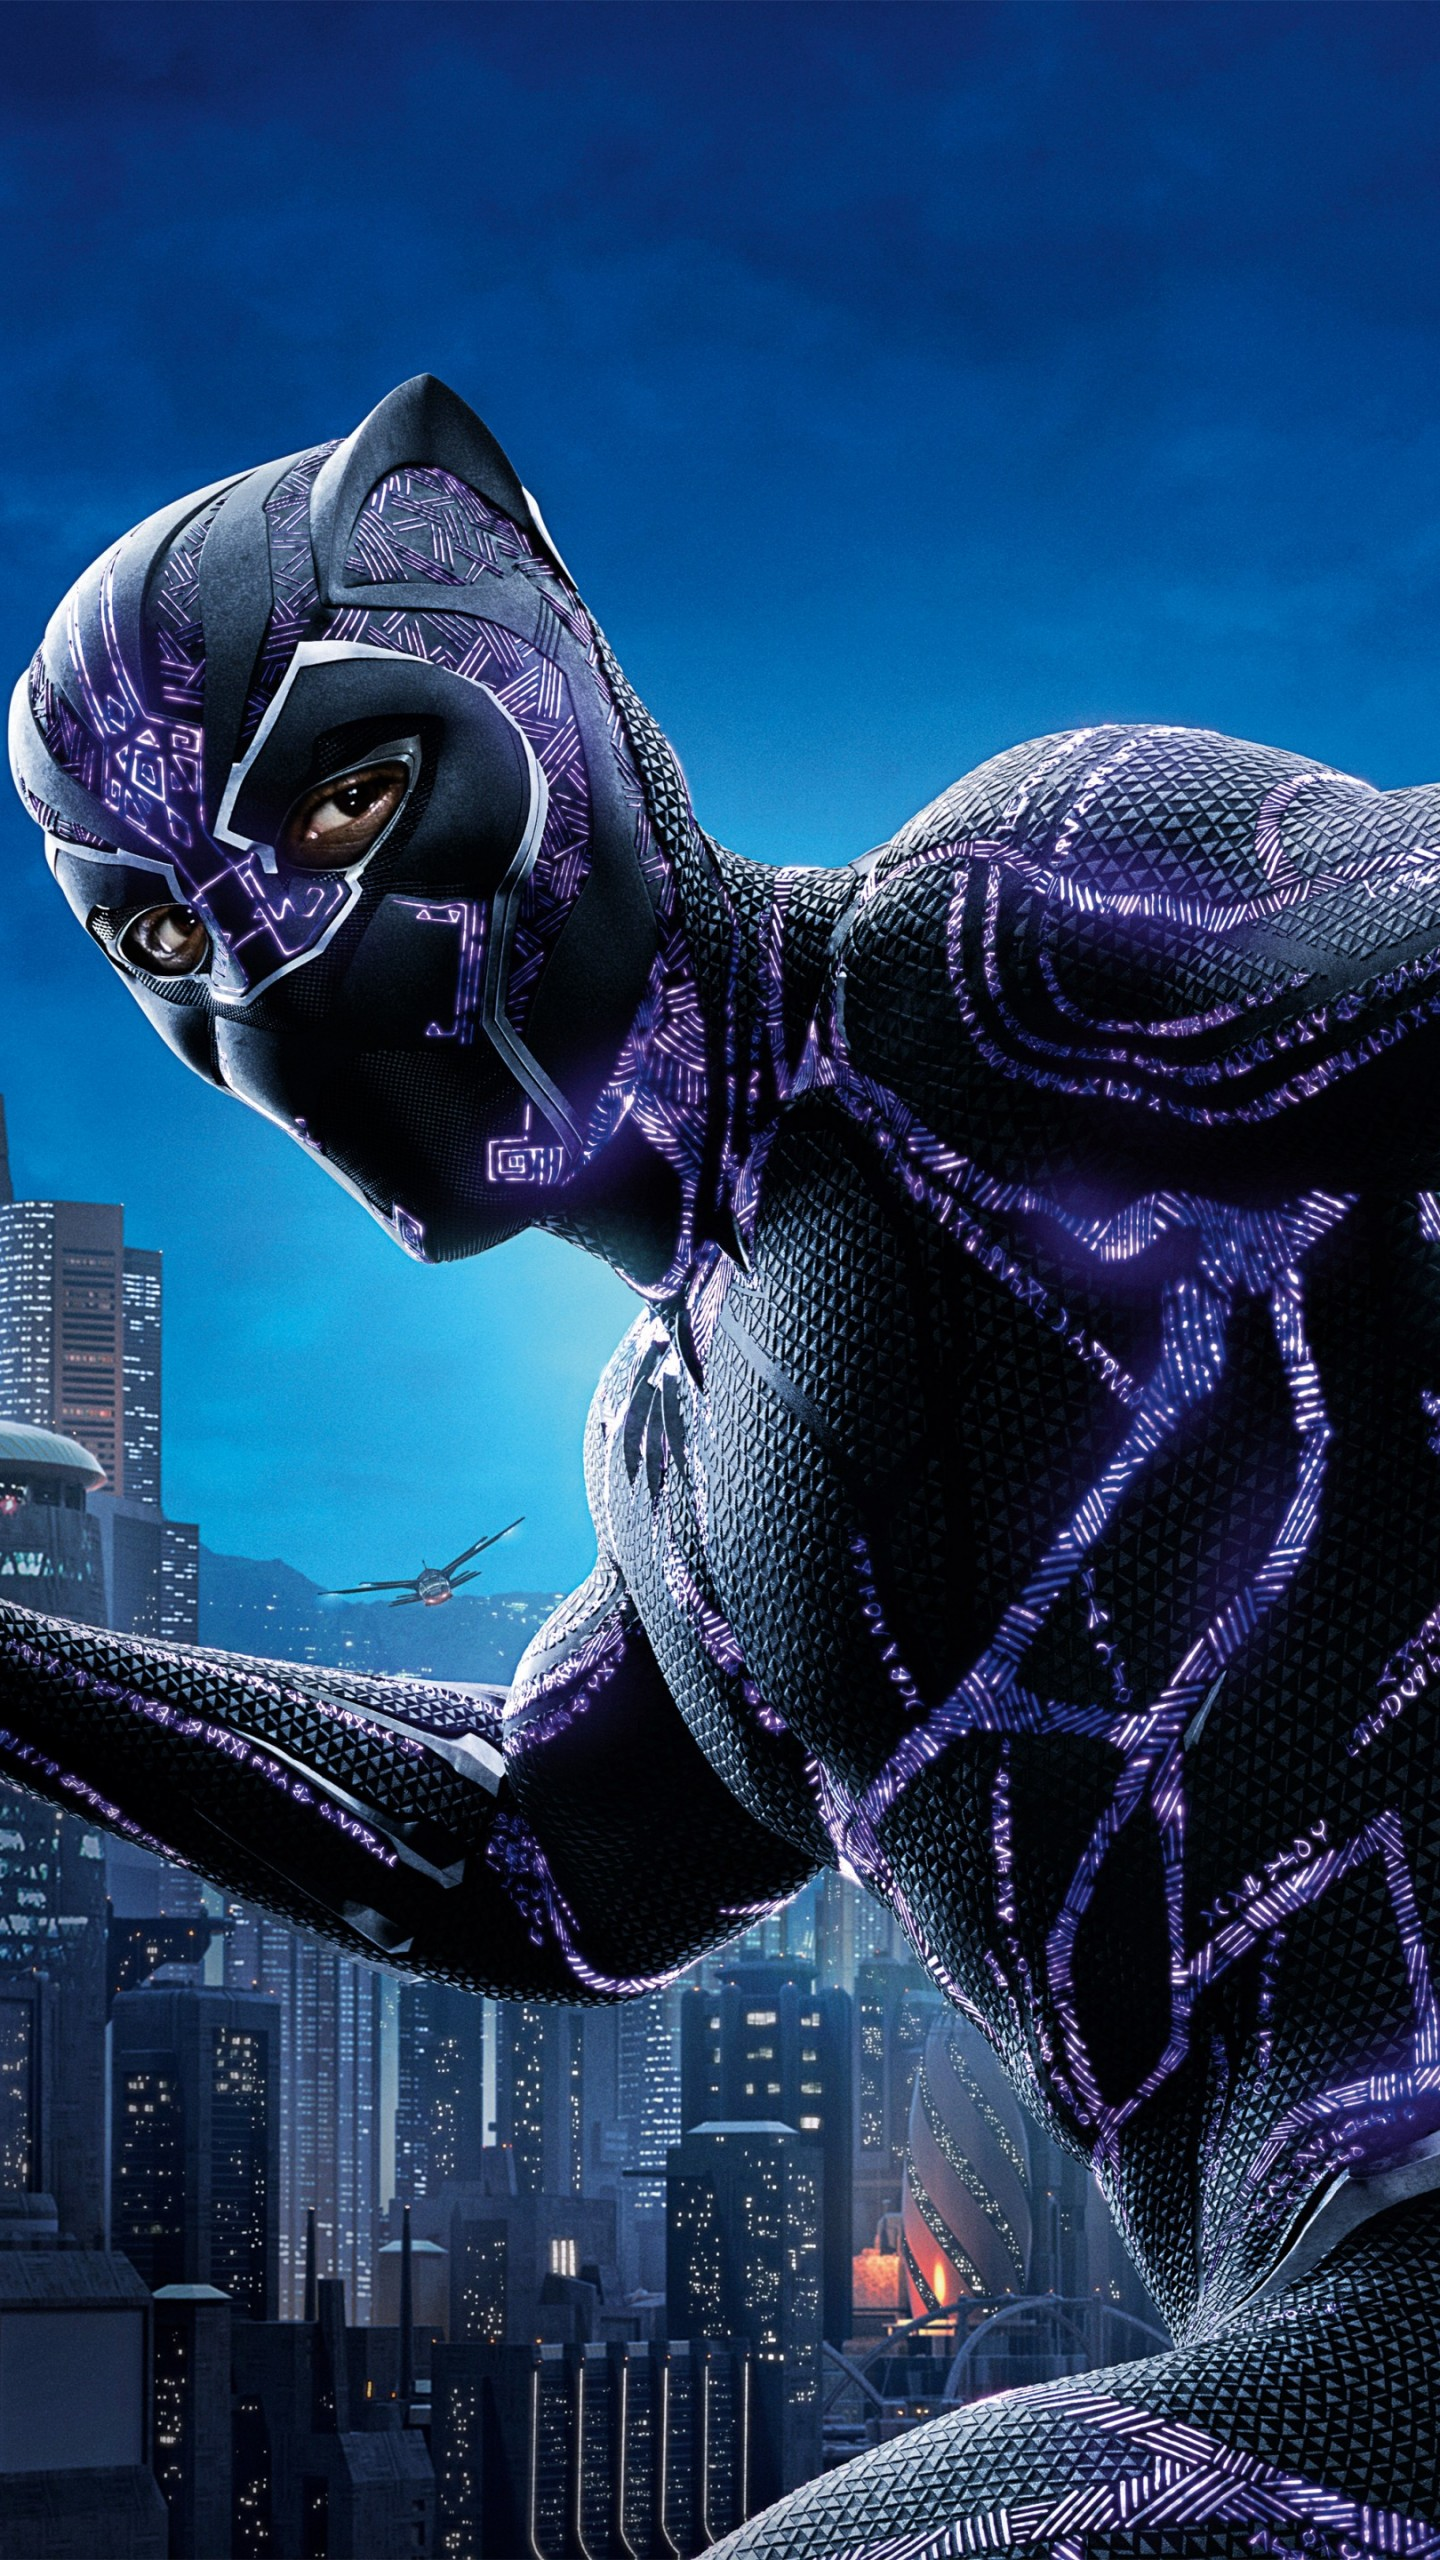 panther chadwick boseman wallpapers hd 4k night iphone 8k 5k mask cityscape buildings plus movies captain america resolution 2k 6s